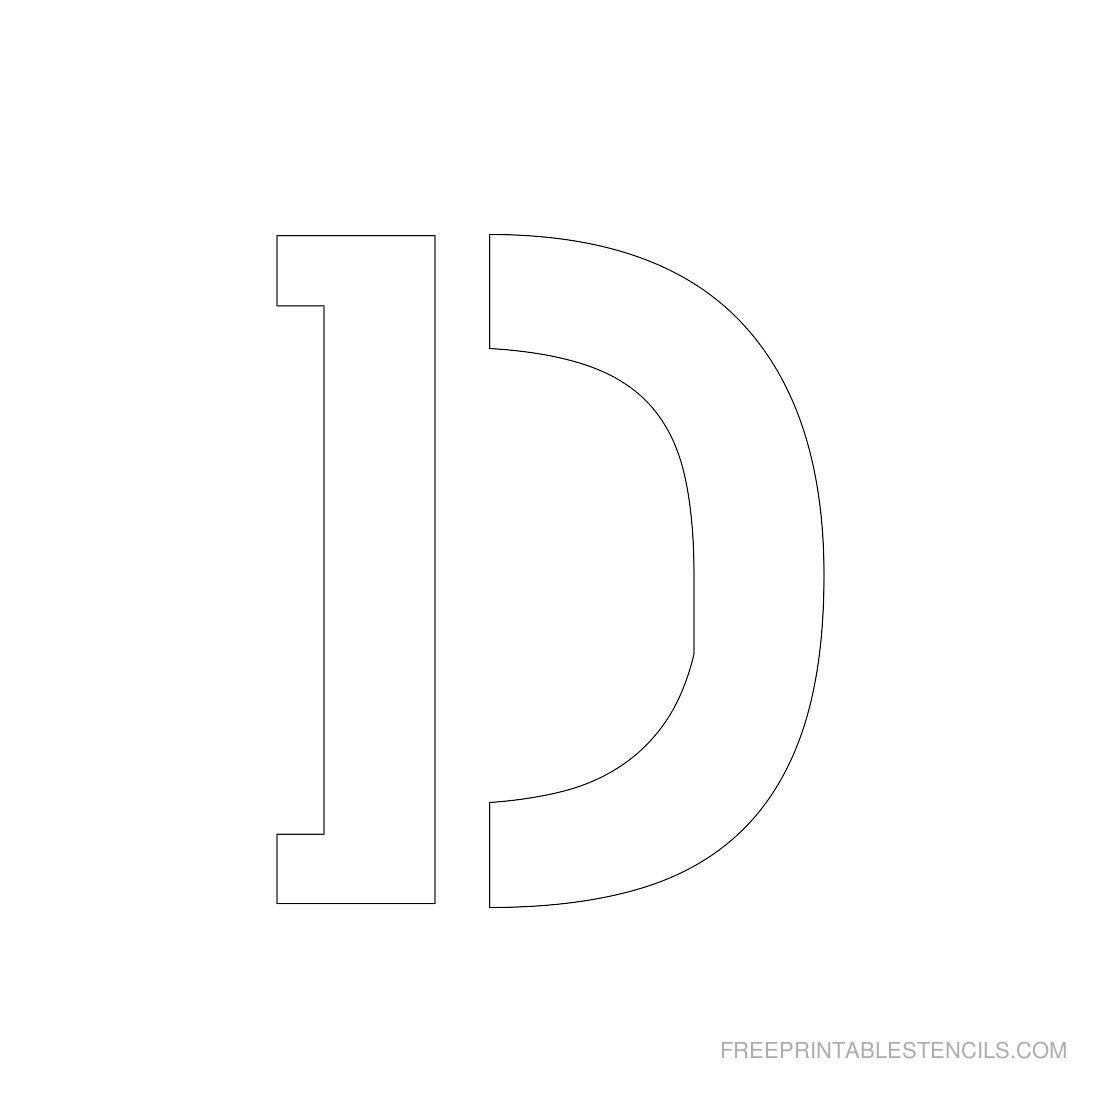 Printable 3 Inch Letter Stencils | Free Printables | Letter Stencils - Free Printable 3 Inch Number Stencils